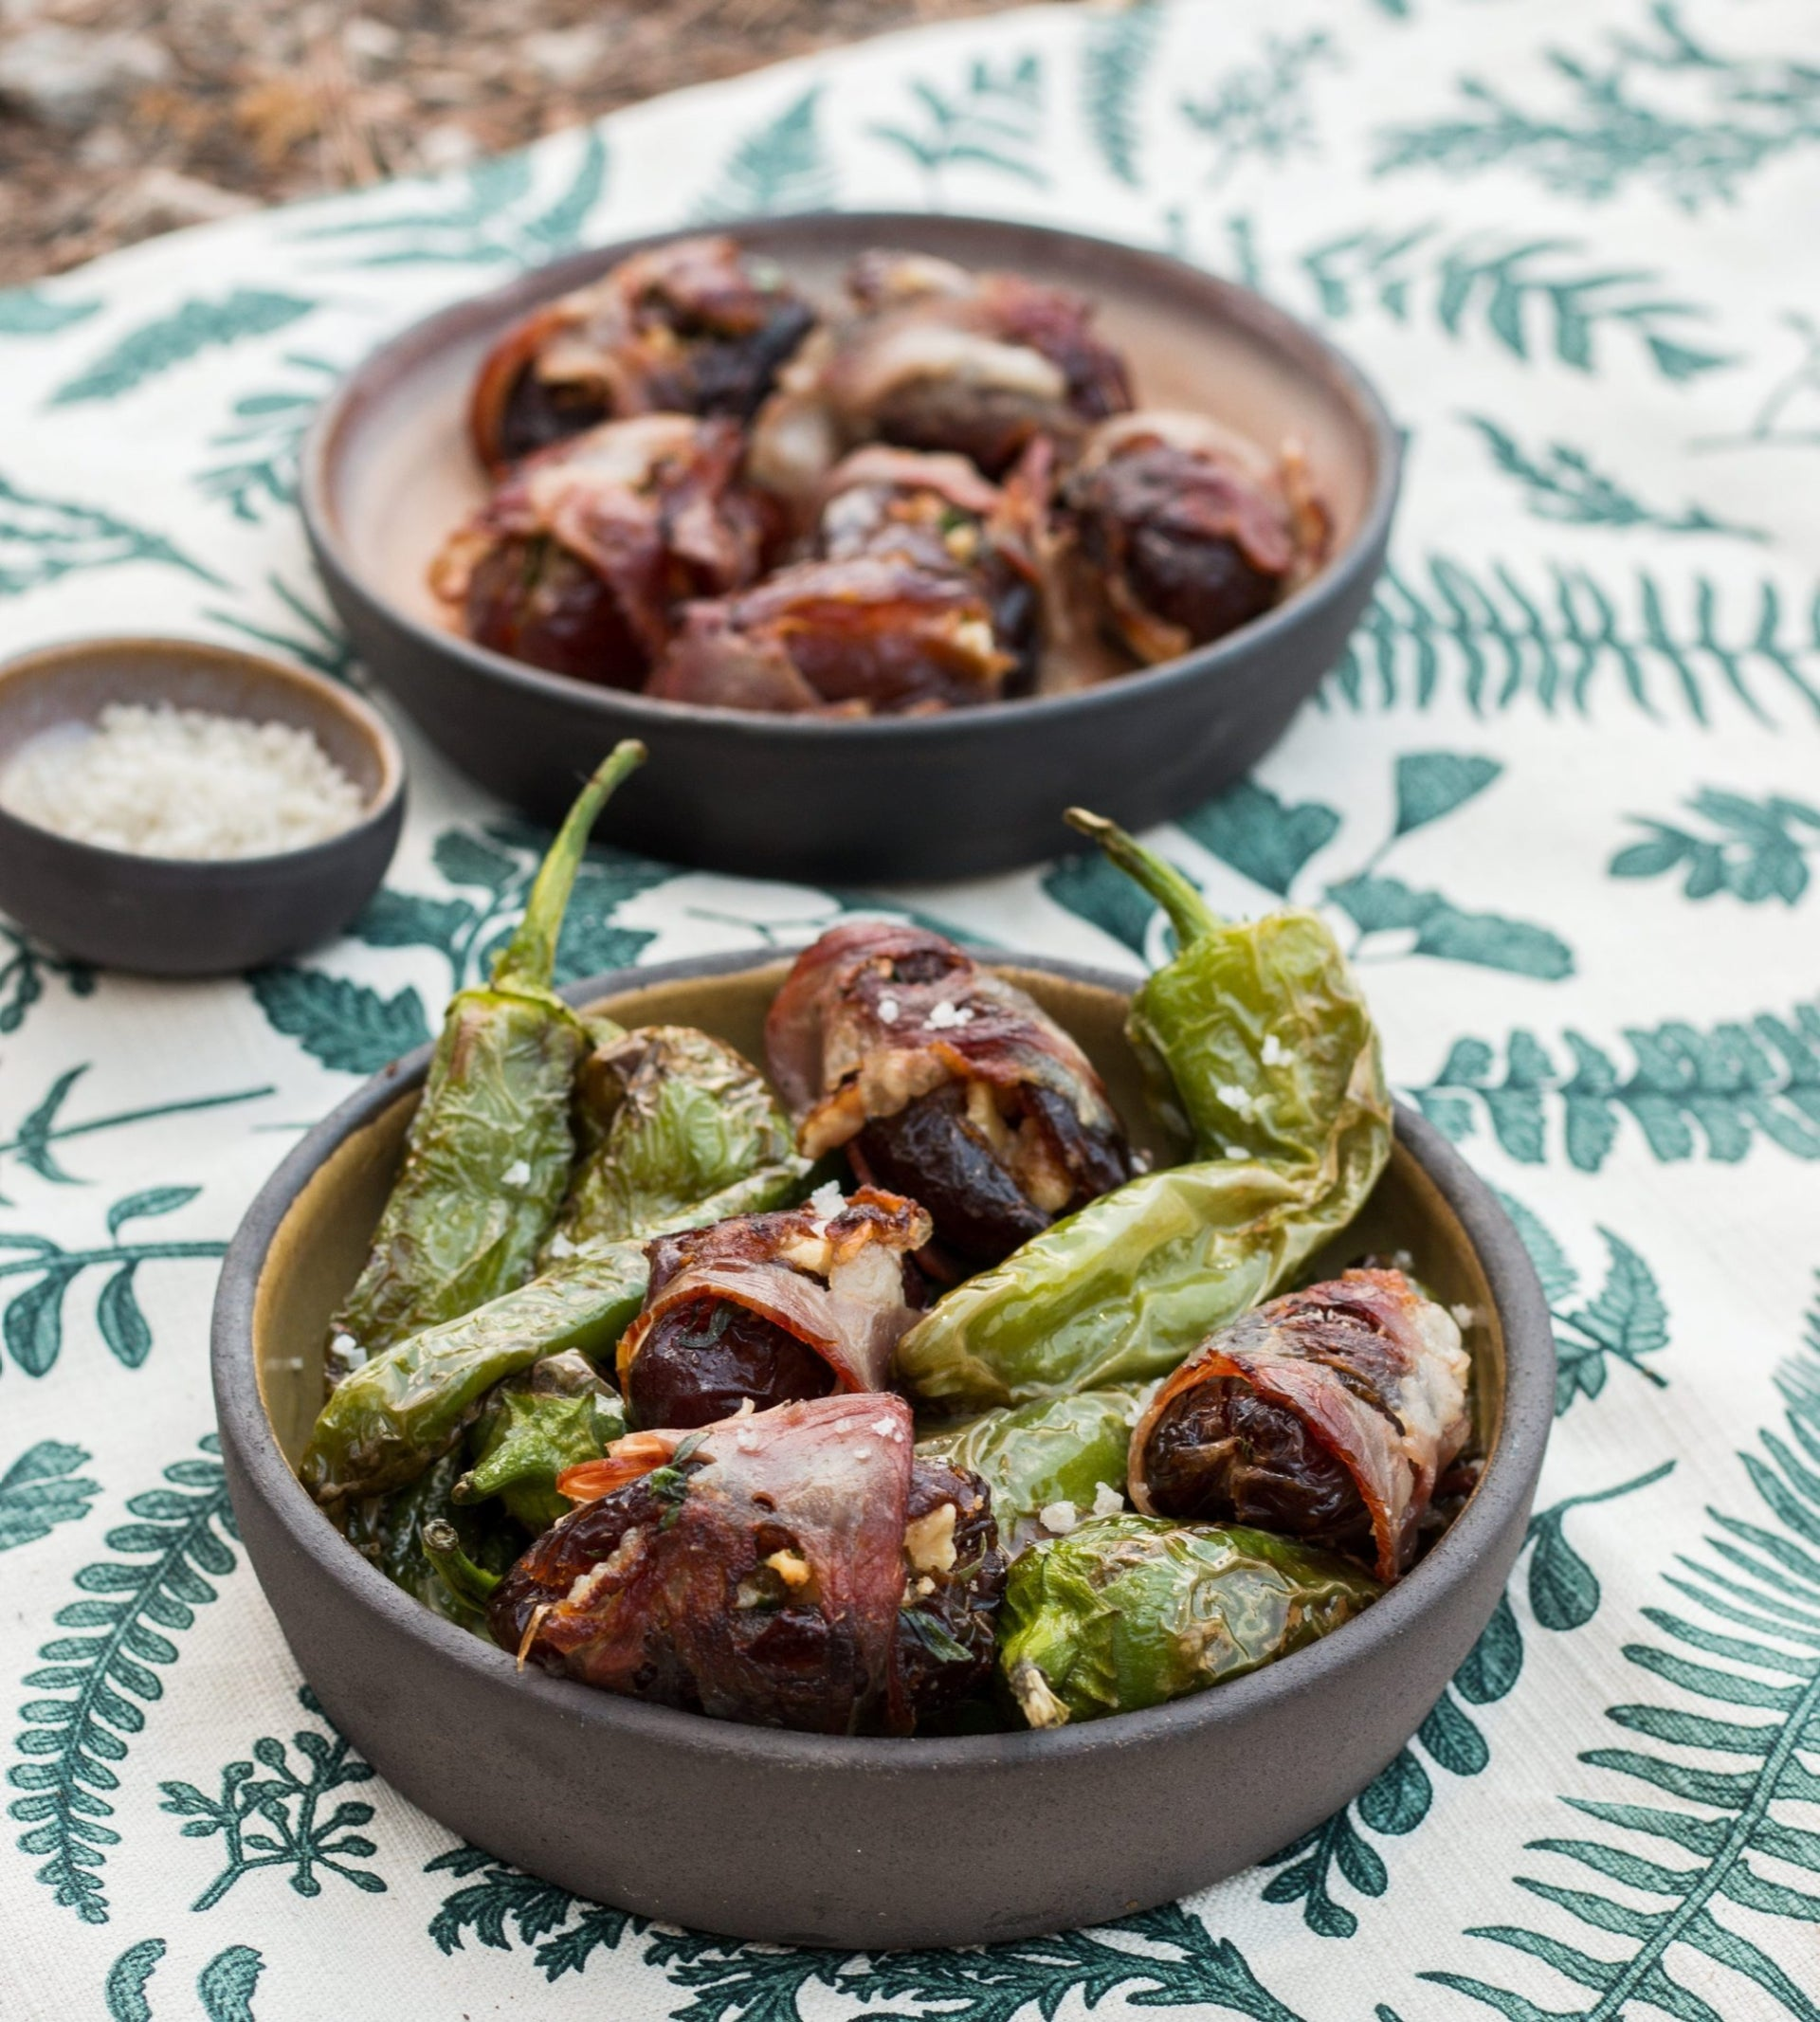 Dates wrapped in lamb bacon with Padron peppers. Sweet and calorie-rich.